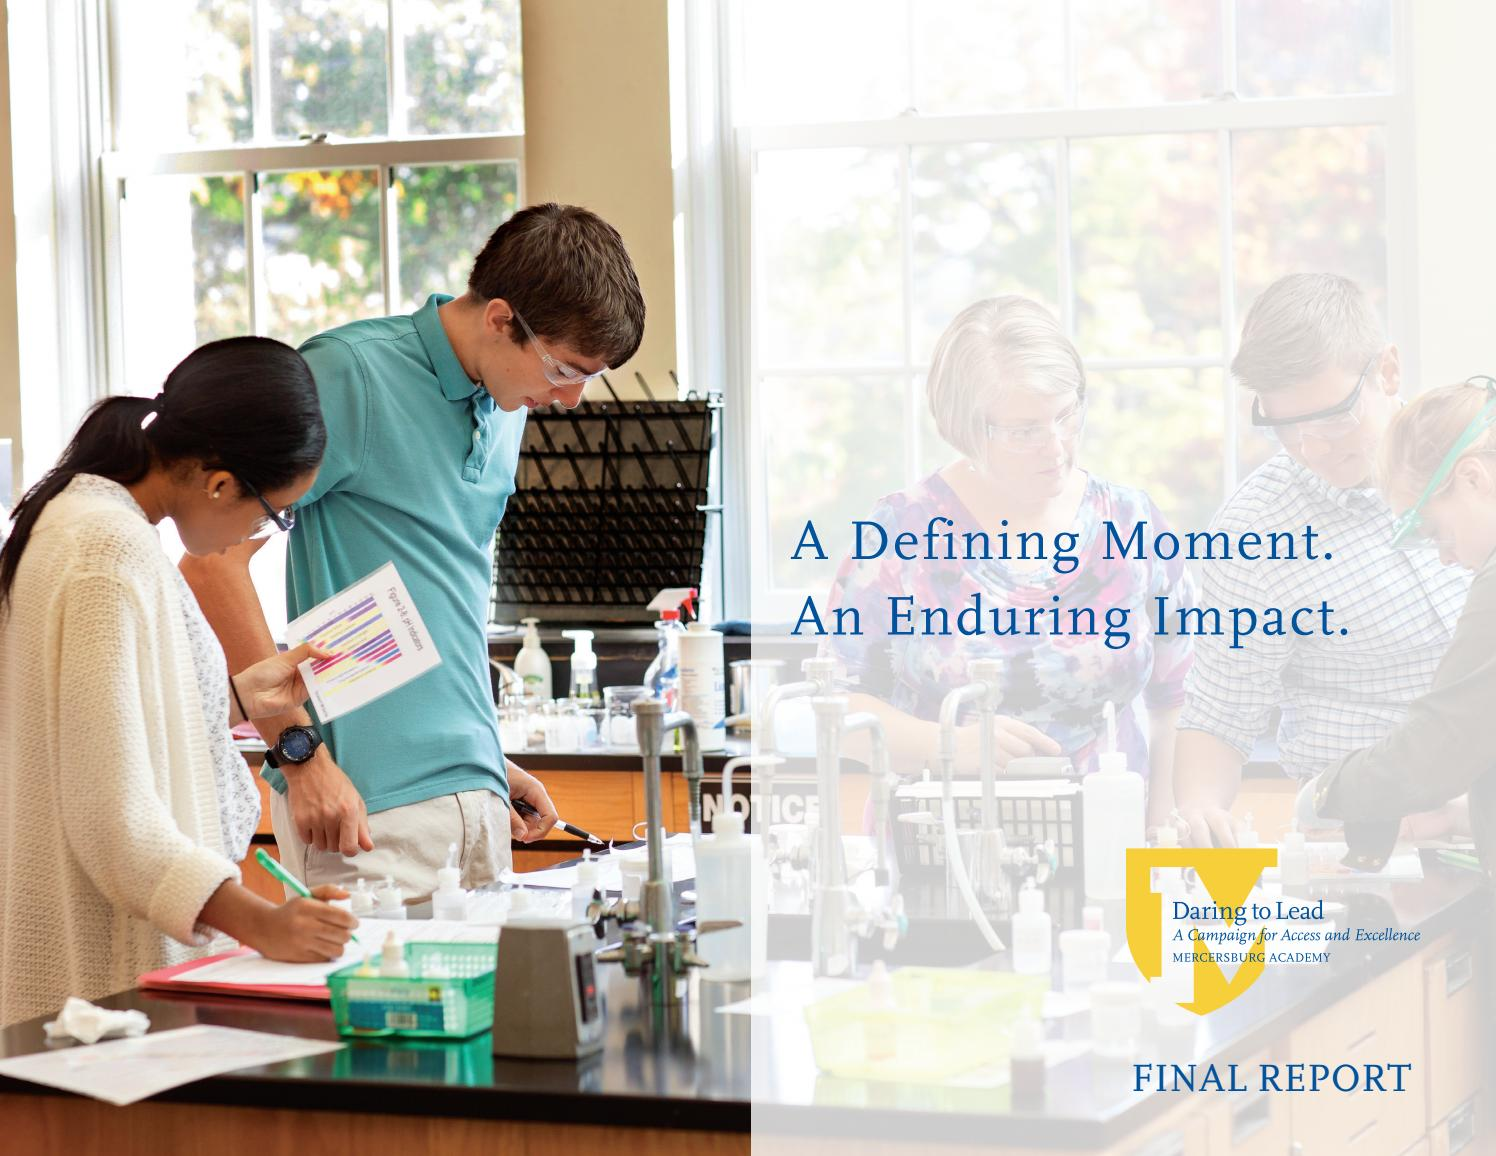 Daring To Lead Campaign Final Report By Mercersburg Academy Issuu